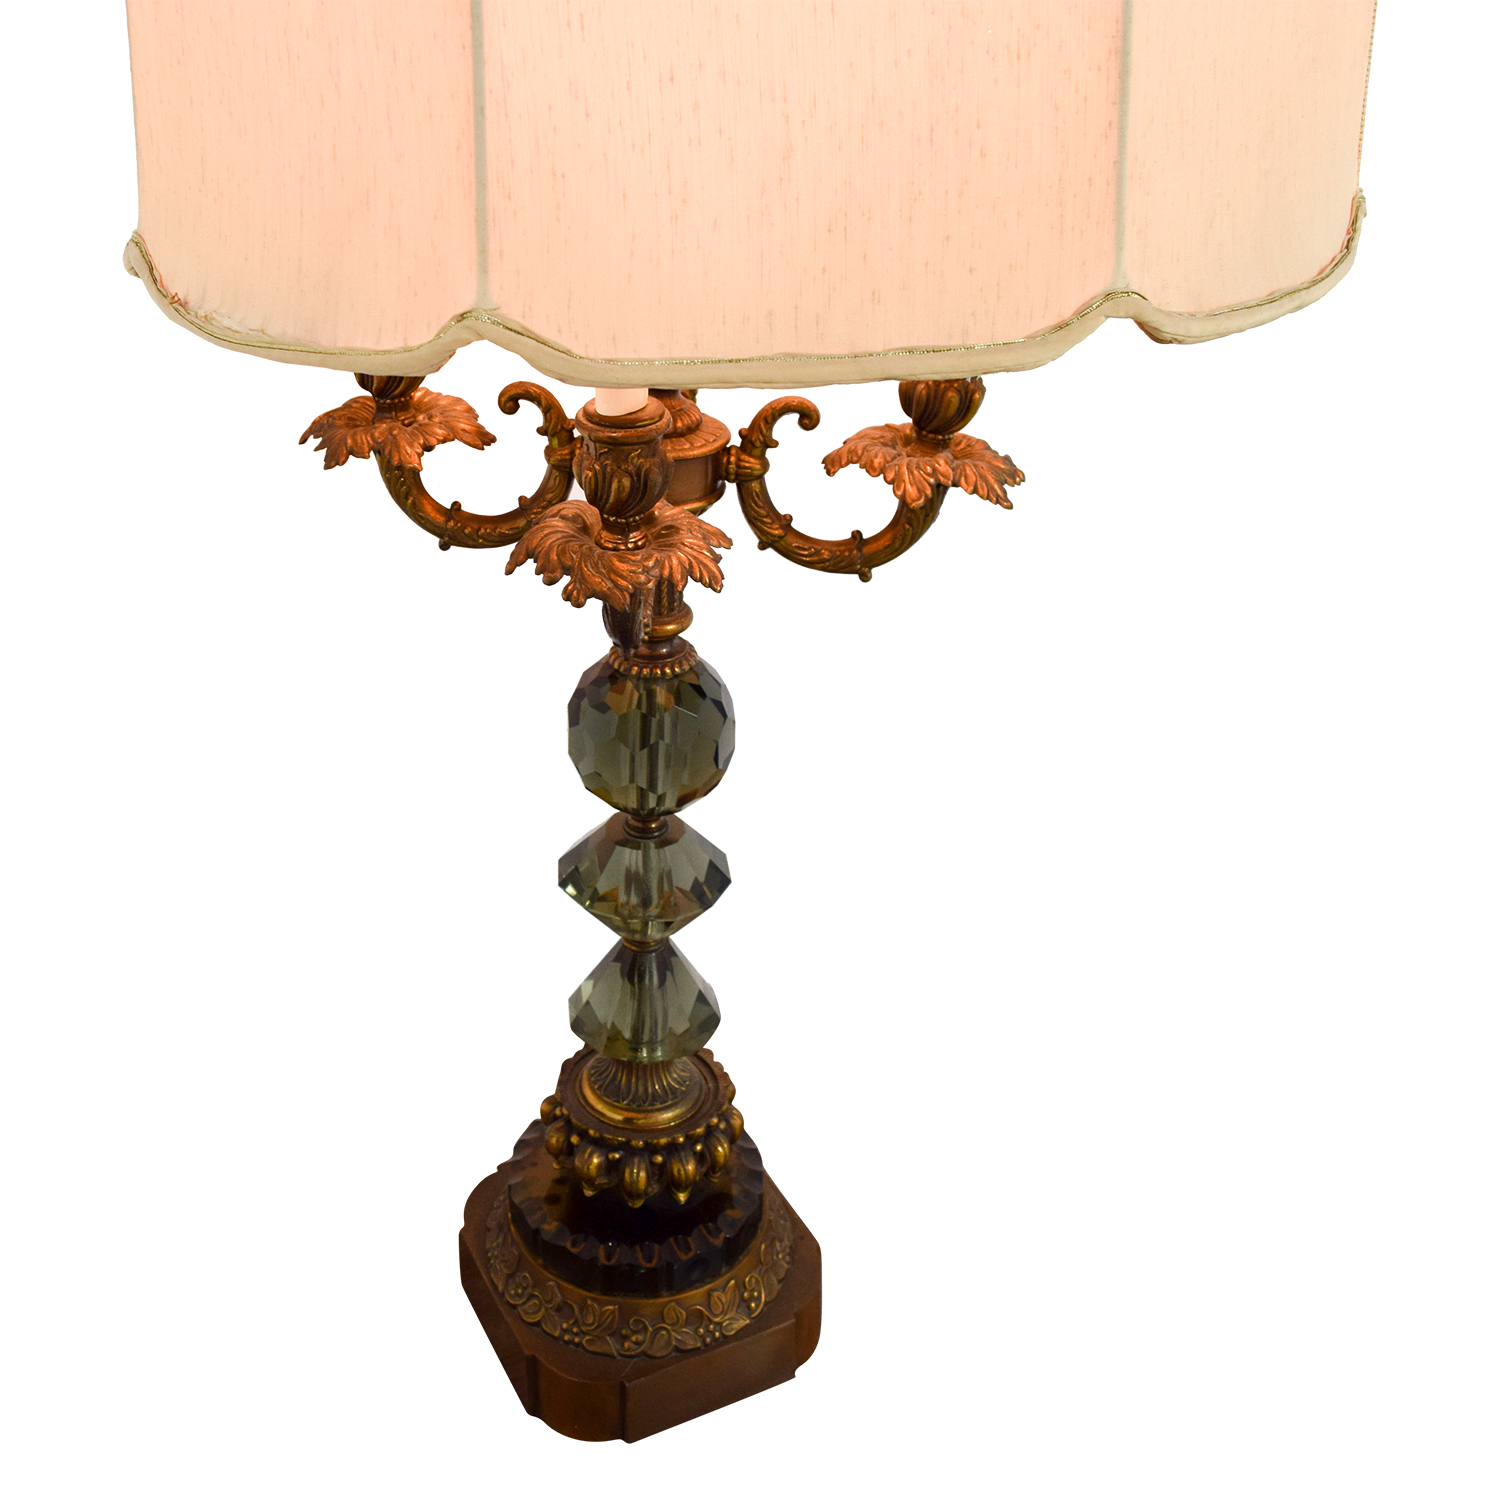 OFF Vintage Mid Century Gold and Crystal Table Lamp Decor